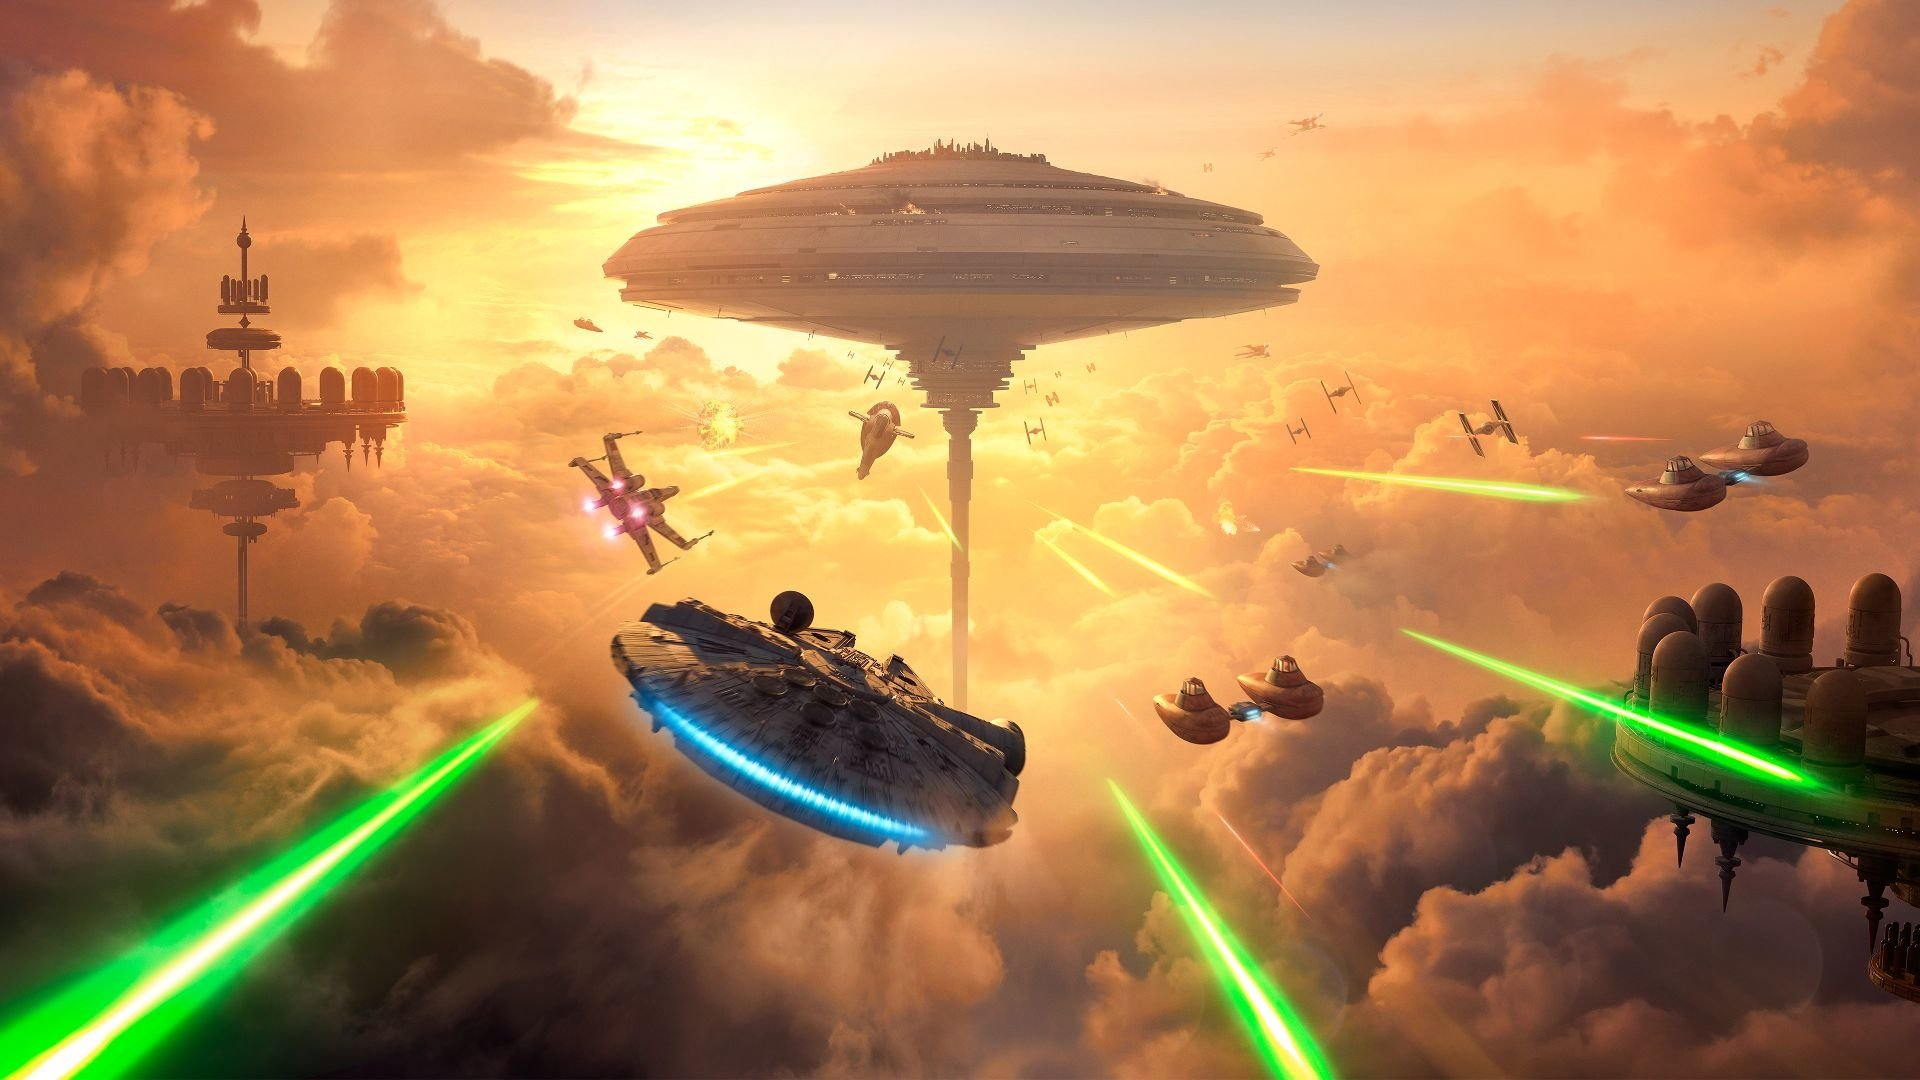 1 Bespin Star Wars HD Wallpapers Background Images   Wallpaper 1920x1080